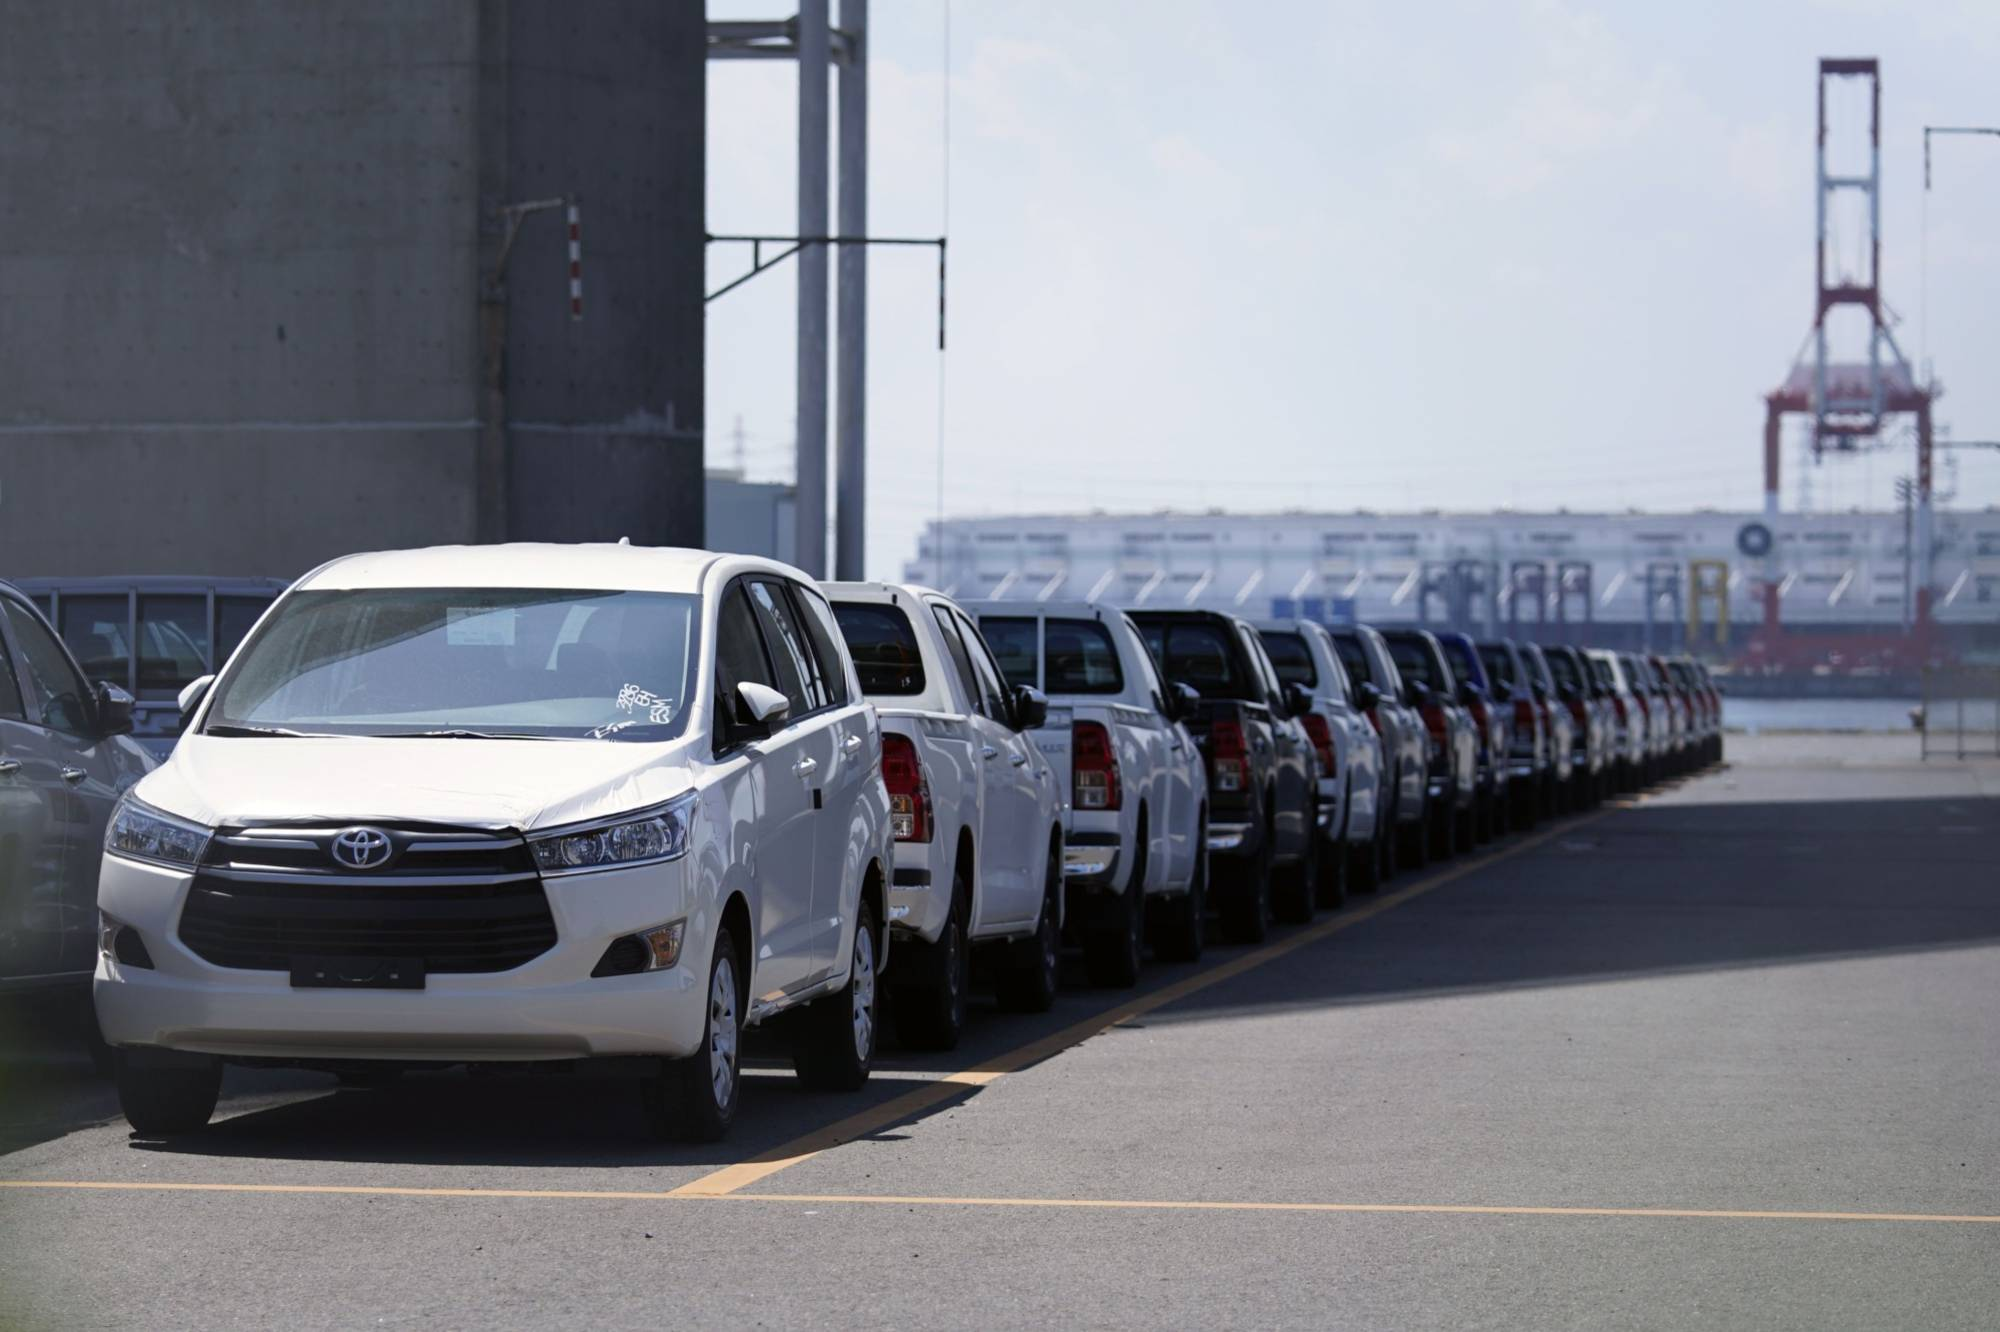 Car sales in 2020 showed the largest year-on-year drop since 2011, when auto sales tumbled 15.1% as the Great East Japan Earthquake and tsunami disrupted supply chains. | BLOOMBERG